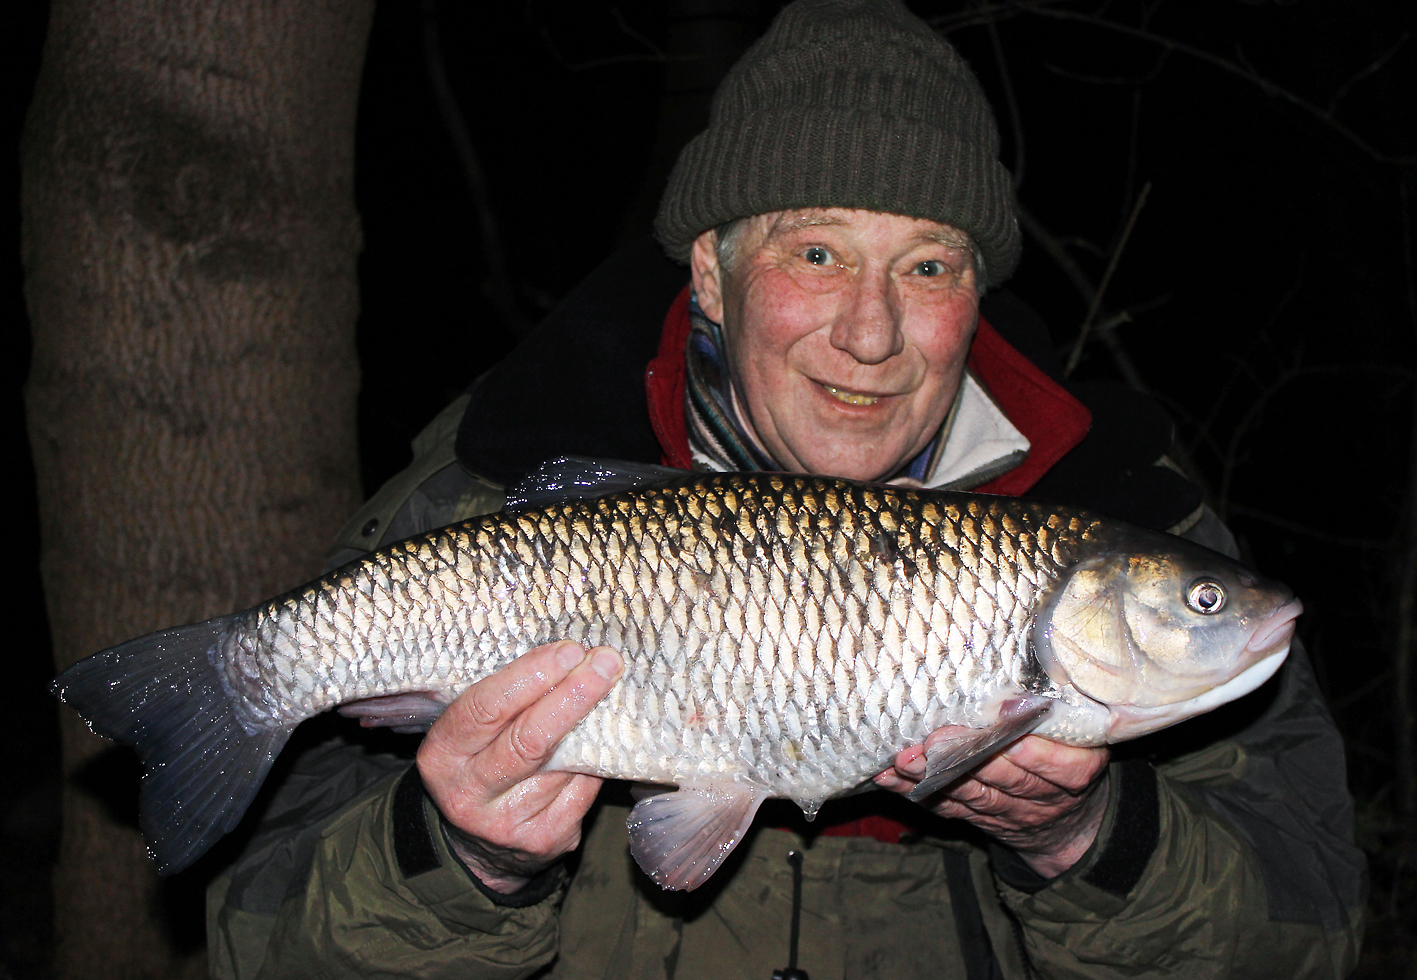 Another '7' to add to Bob's impressive list of Lea chub captures